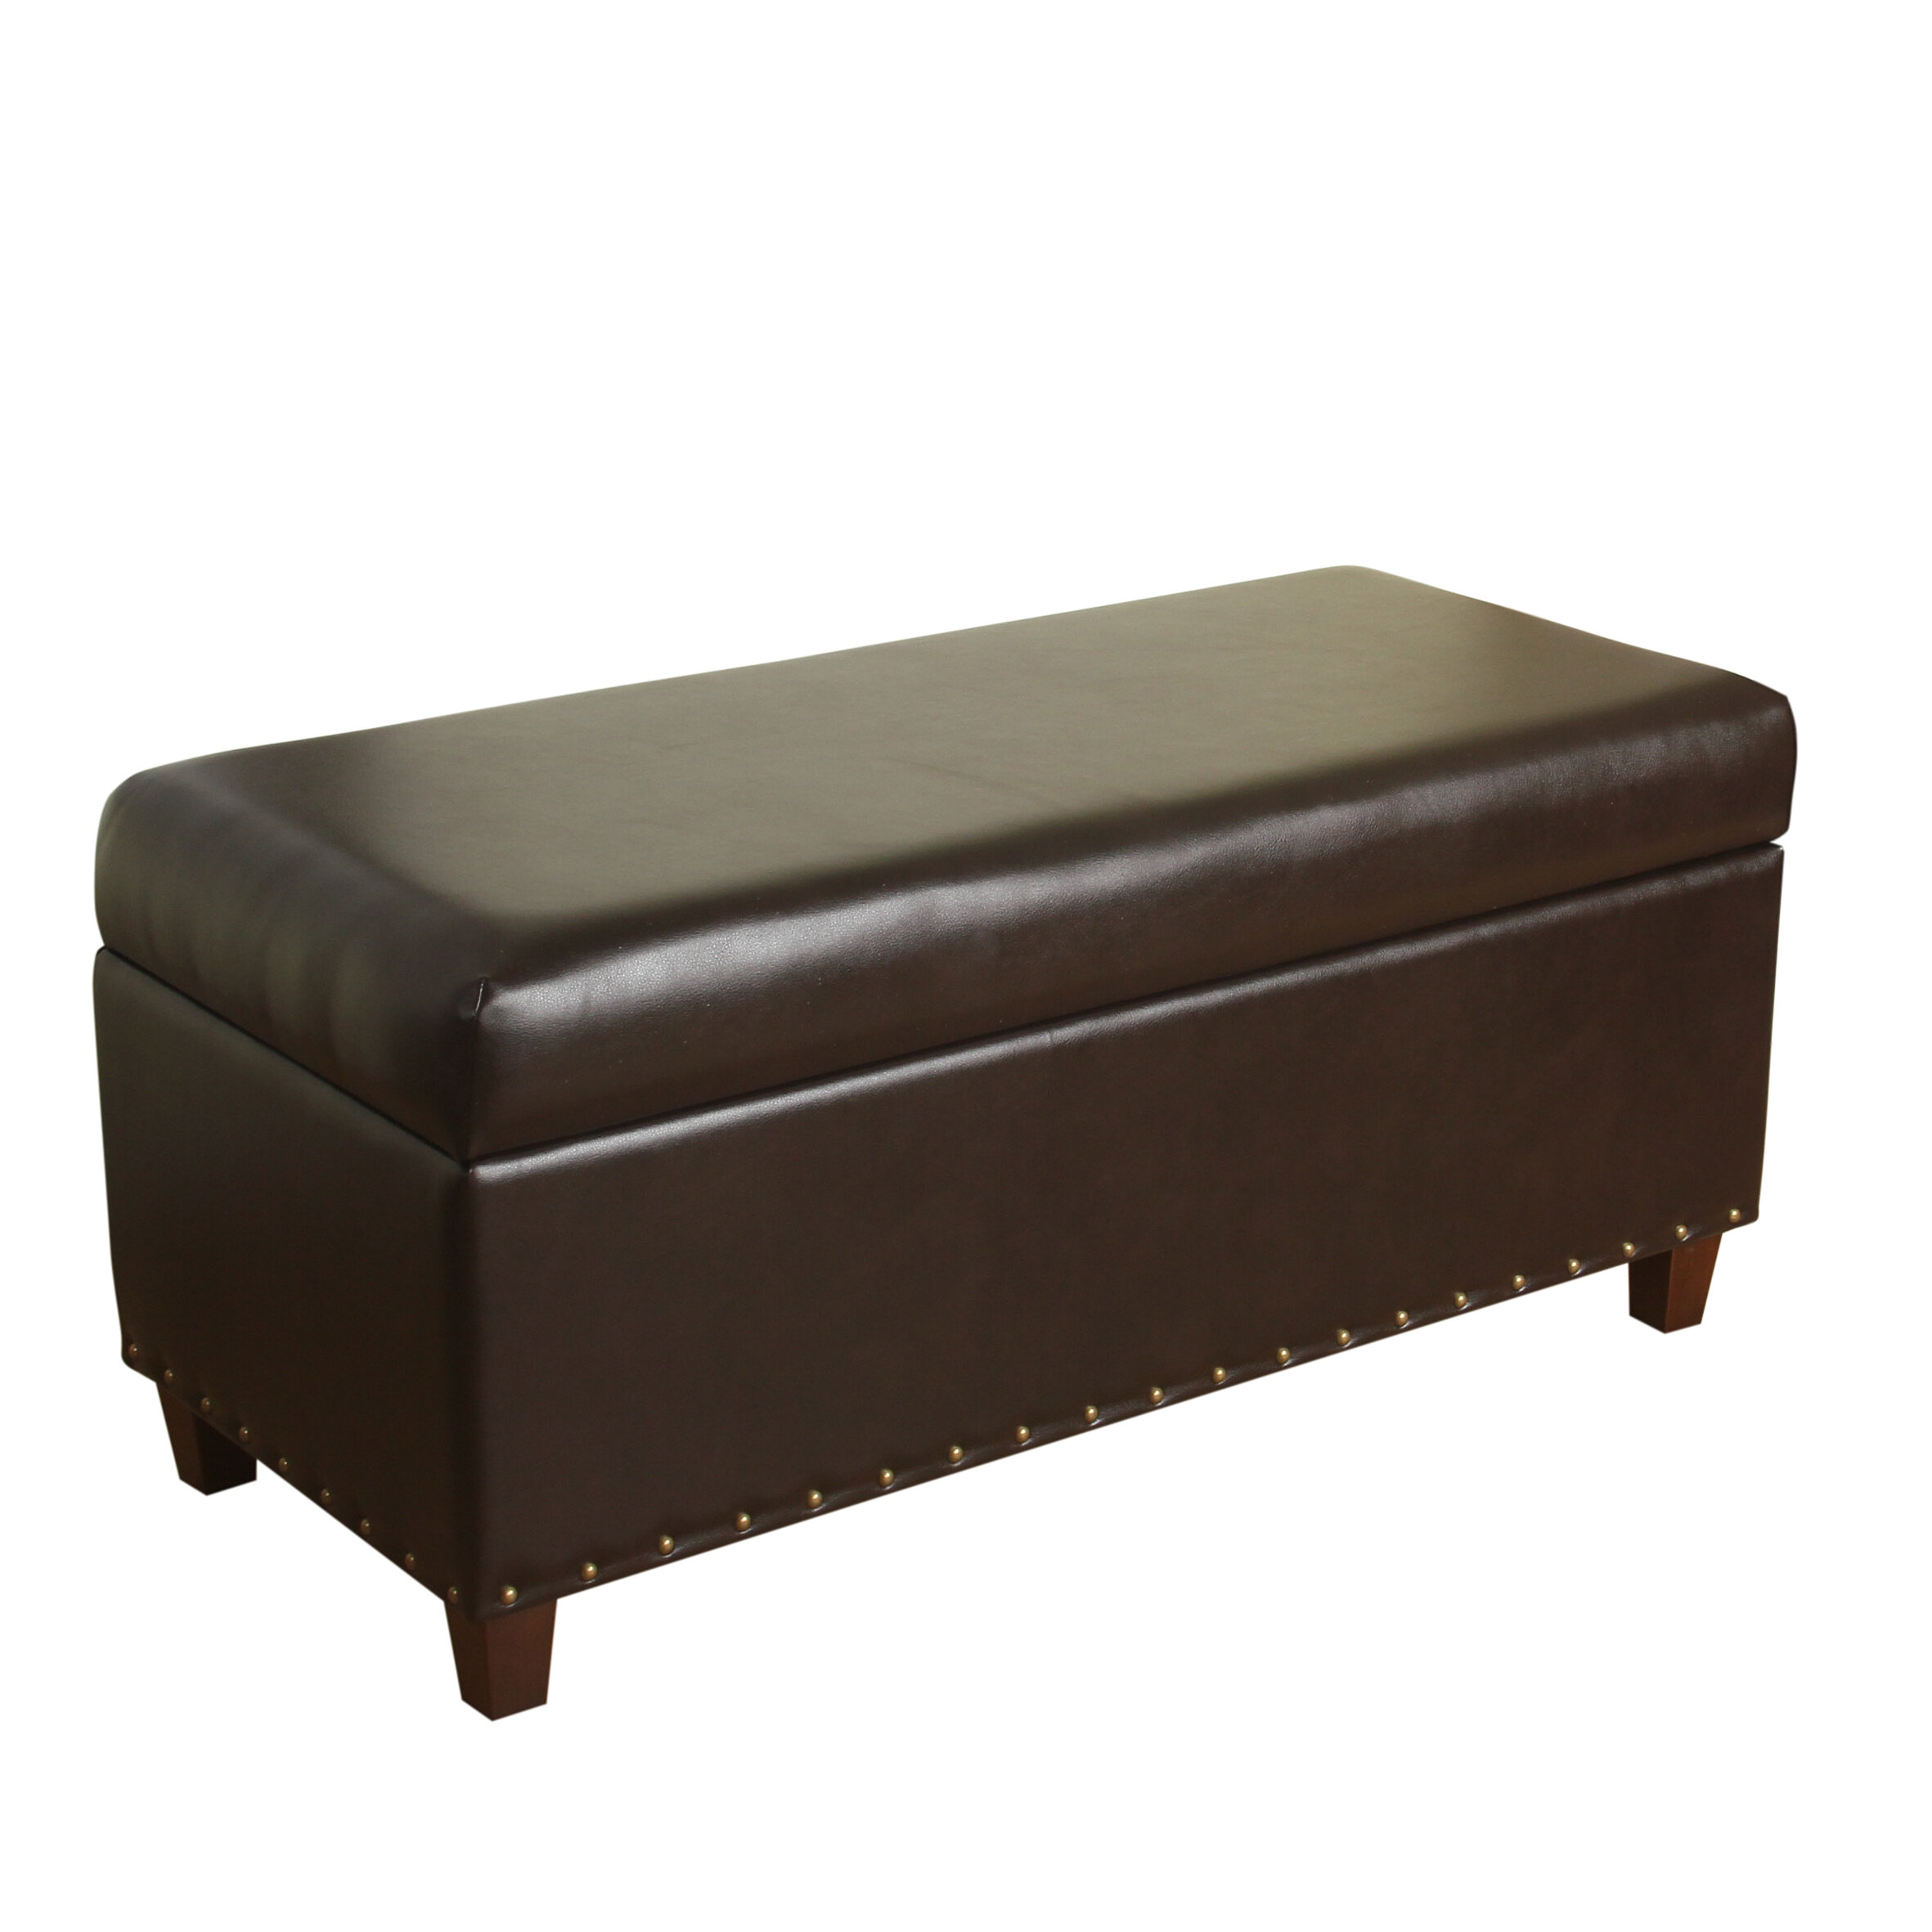 sc 1 st  Wayfair & Alcott Hill Krantz Faux Leather Storage Bench u0026 Reviews | Wayfair